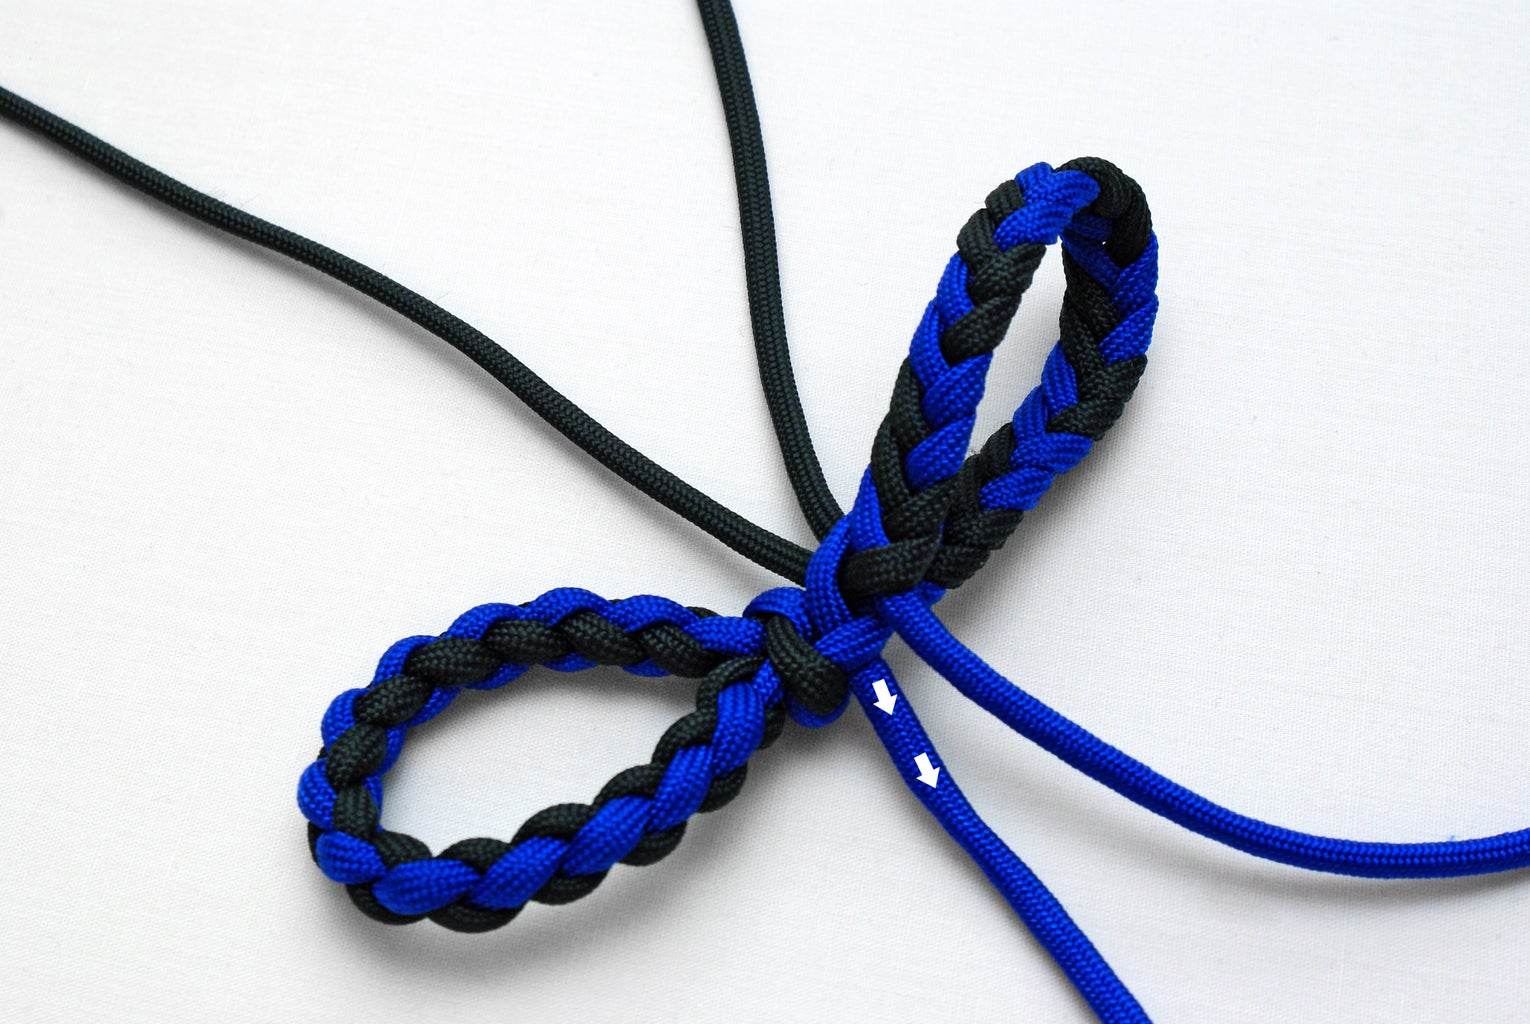 Making a Loop and Preparing the Strands for the Manrope Knot